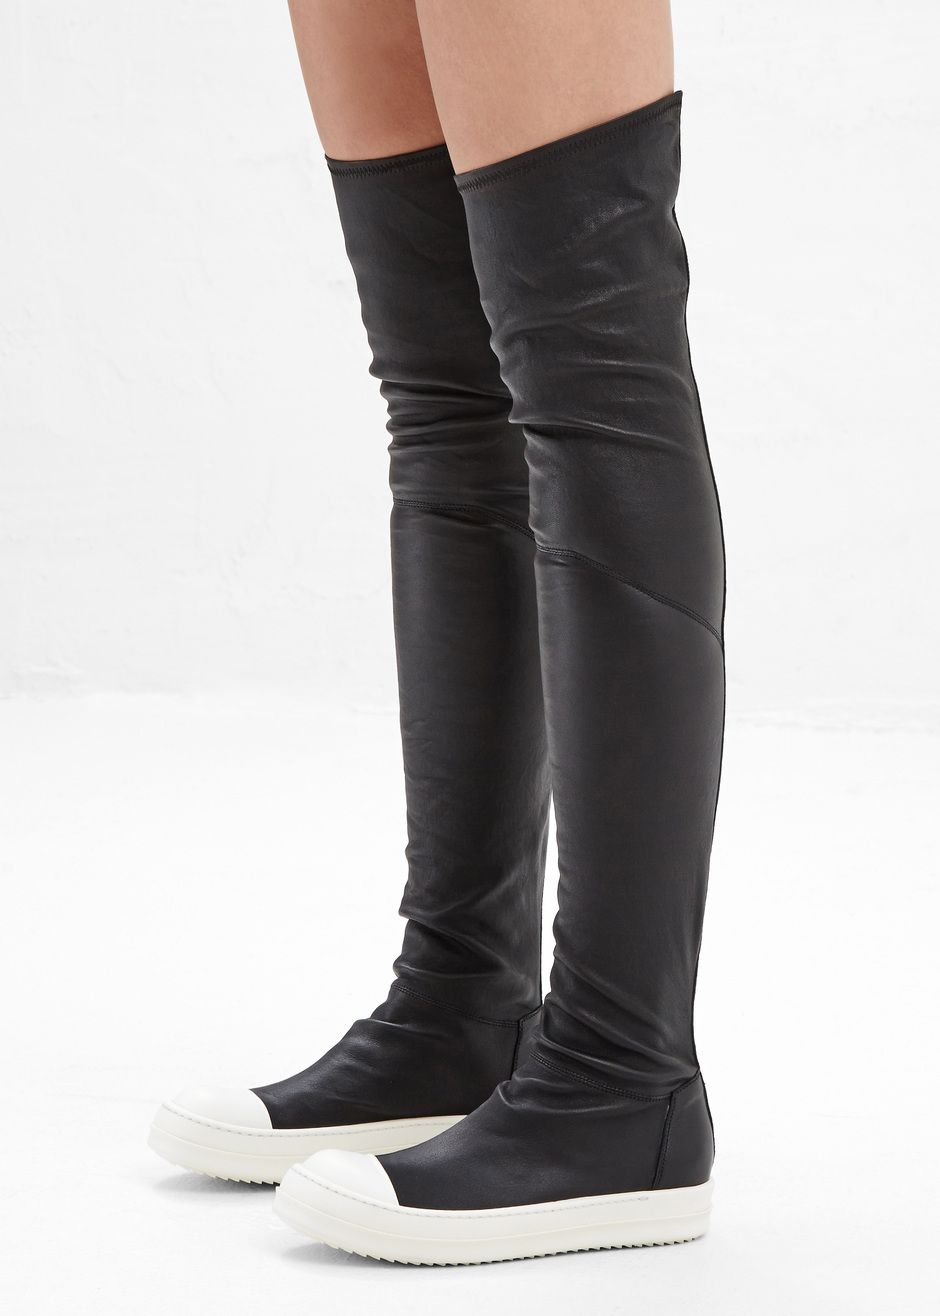 Totokaelo - Rick Owens Black / White Thigh High Sneakers ...